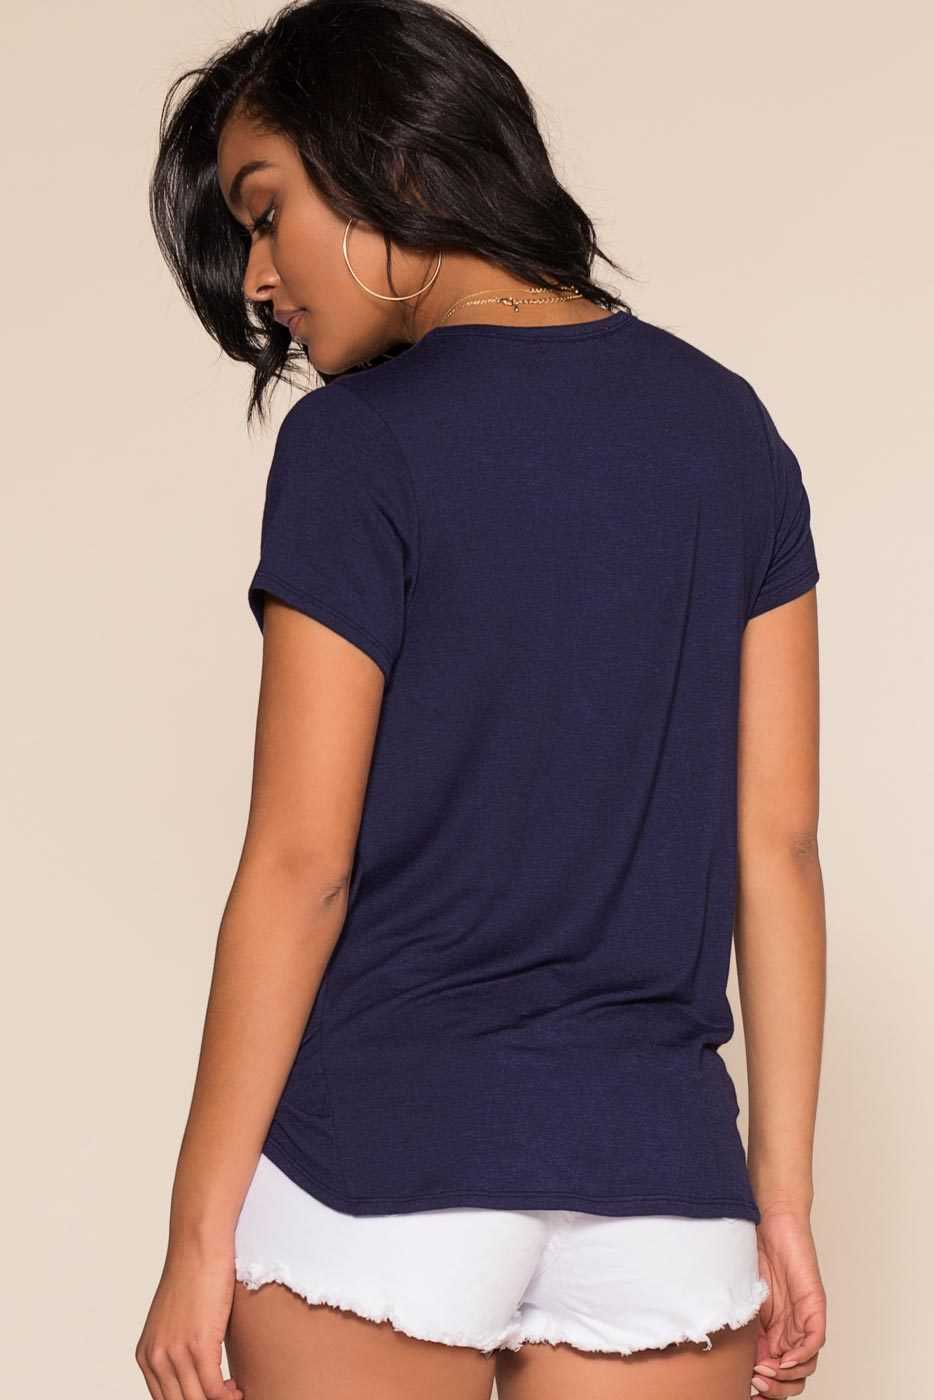 Tops - Serena Top - Navy